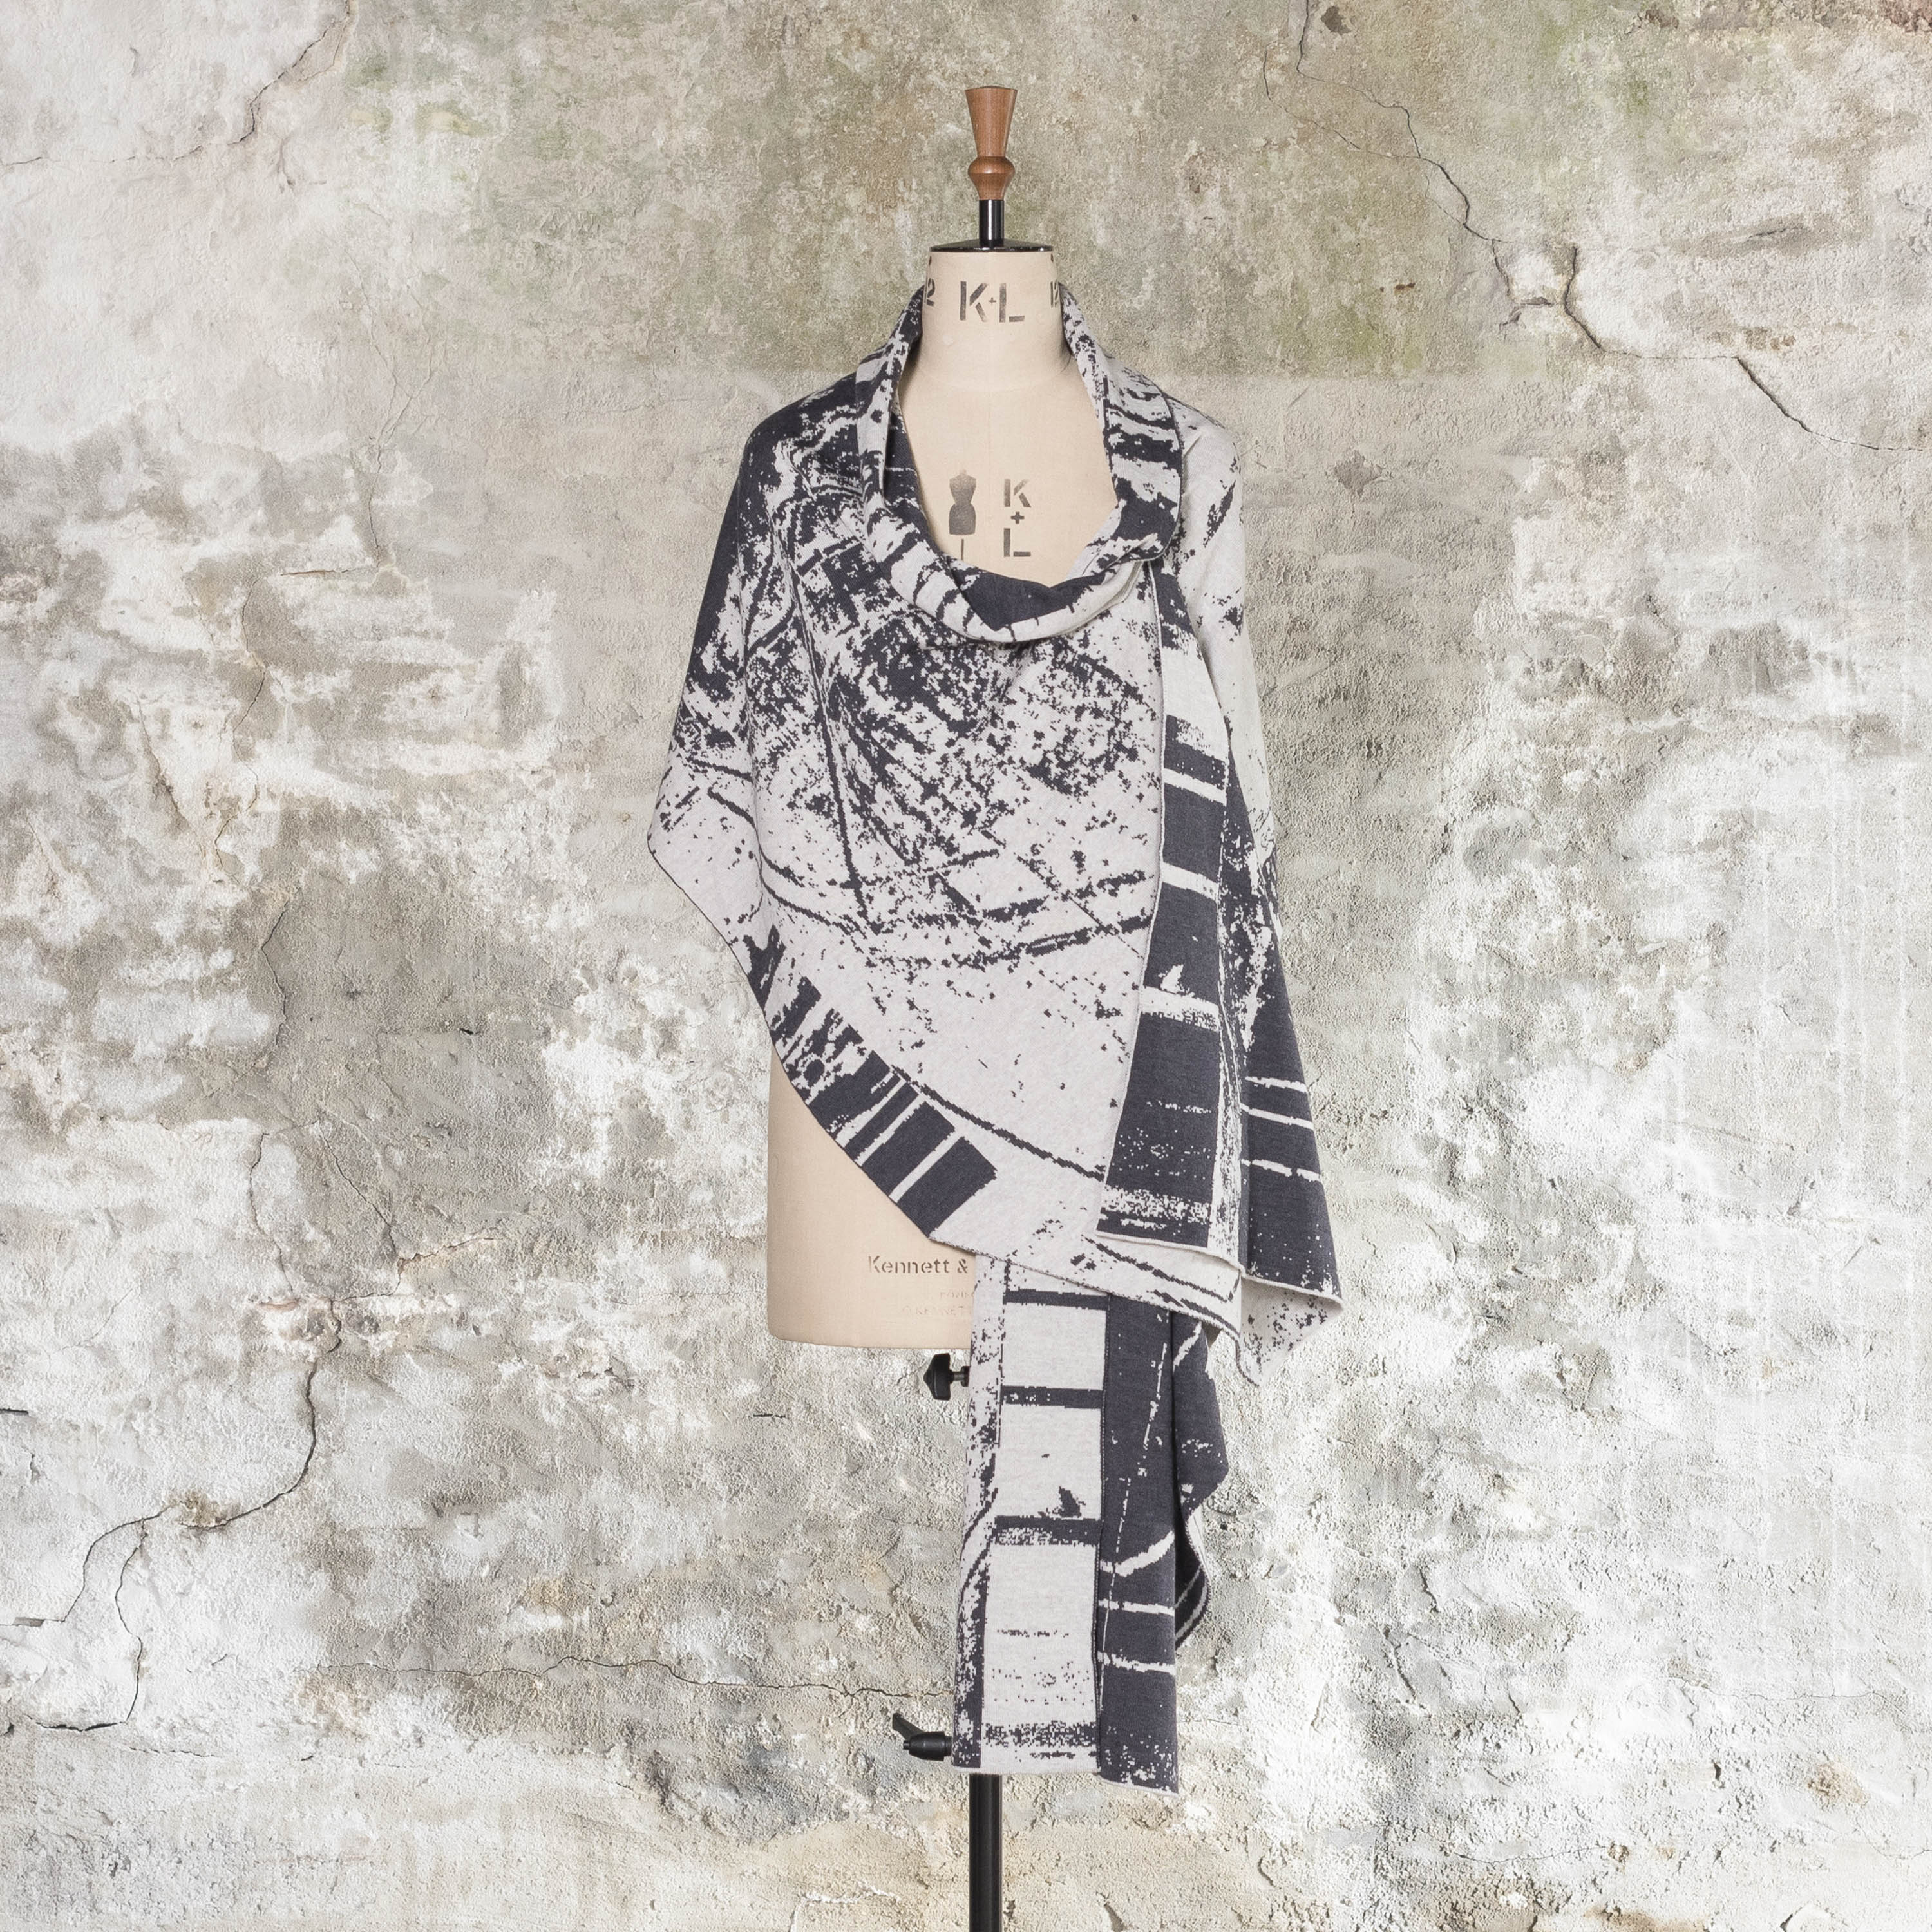 Contemporary Shetland shawl in Nielanell Byre abstract design, in charcoal and stone white yarn. Shown on a vintage mannequin against a rustic wall